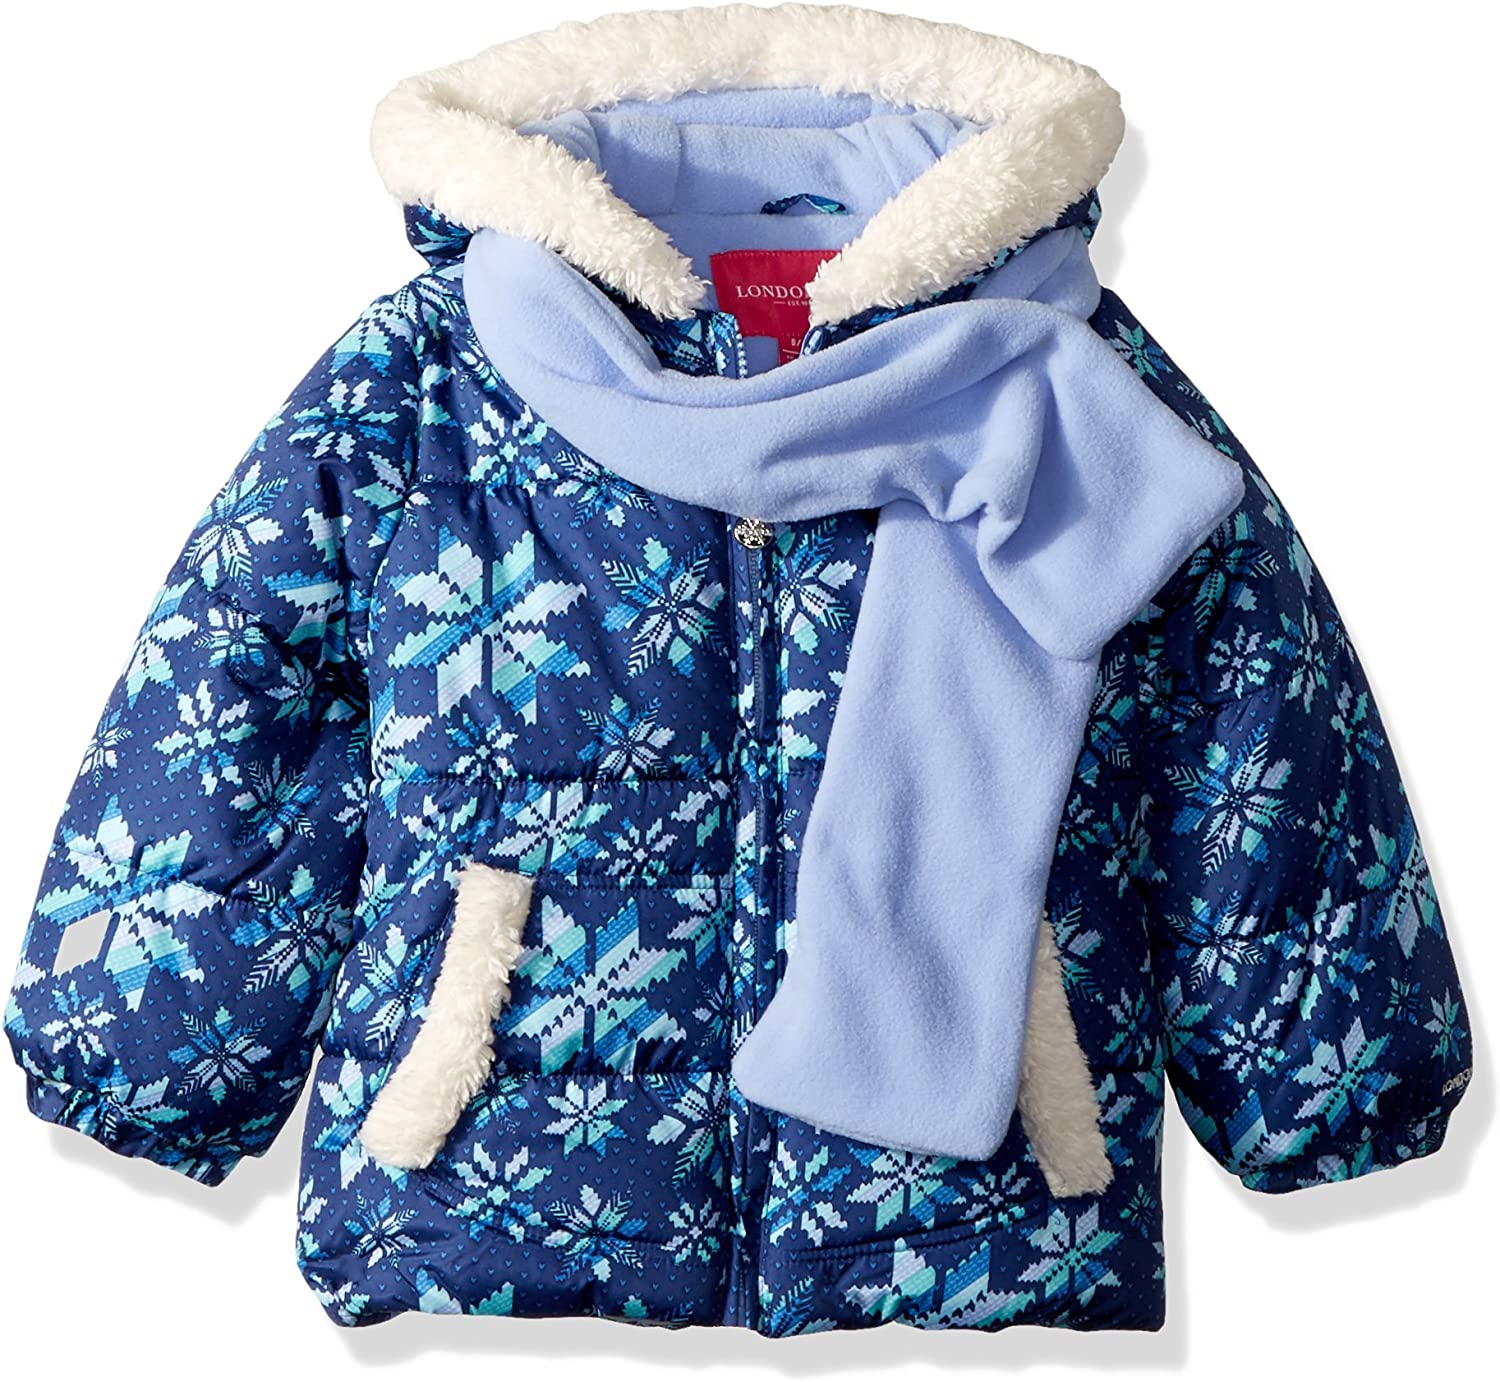 London Fog Girls Big Color Blocked Puffer Jacket Coat with Scarf